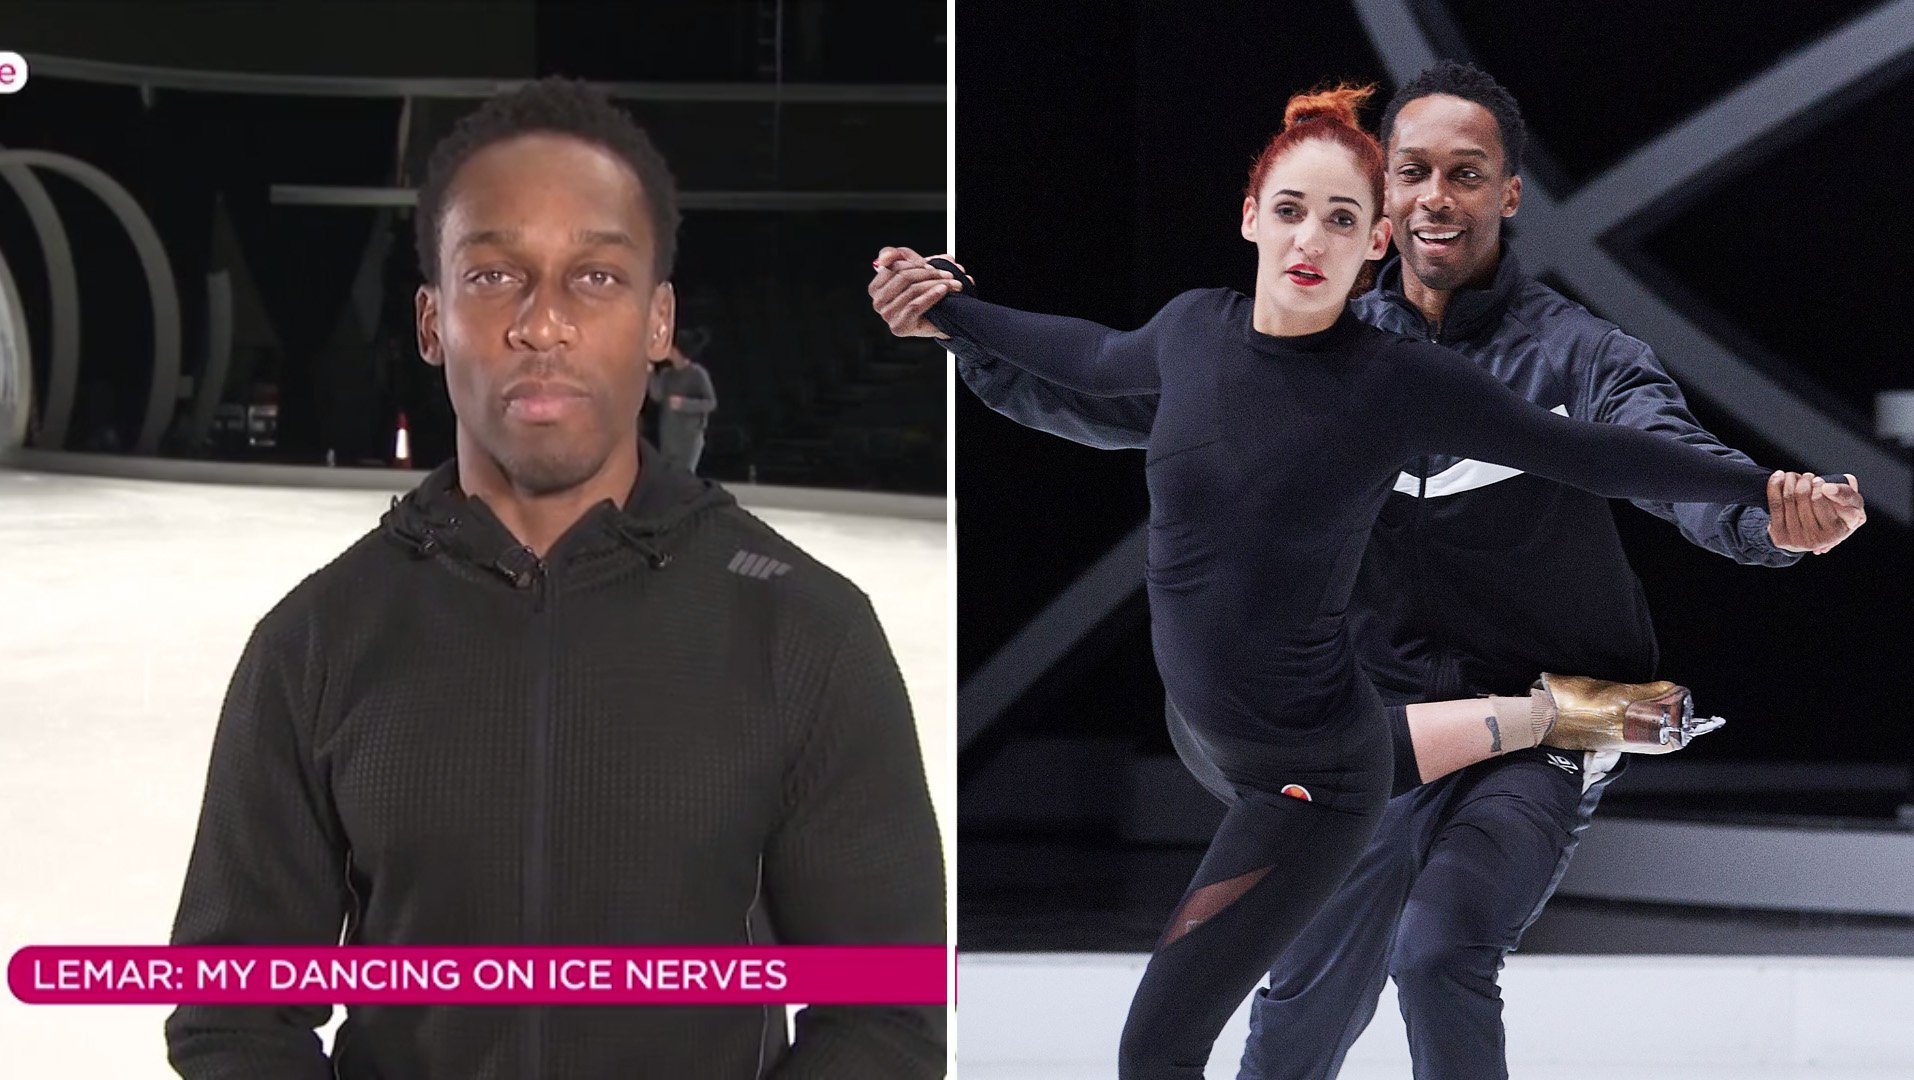 Lemar reveals intense injuries ahead of Dancing On Ice solo debut: 'My groin is very painful!'